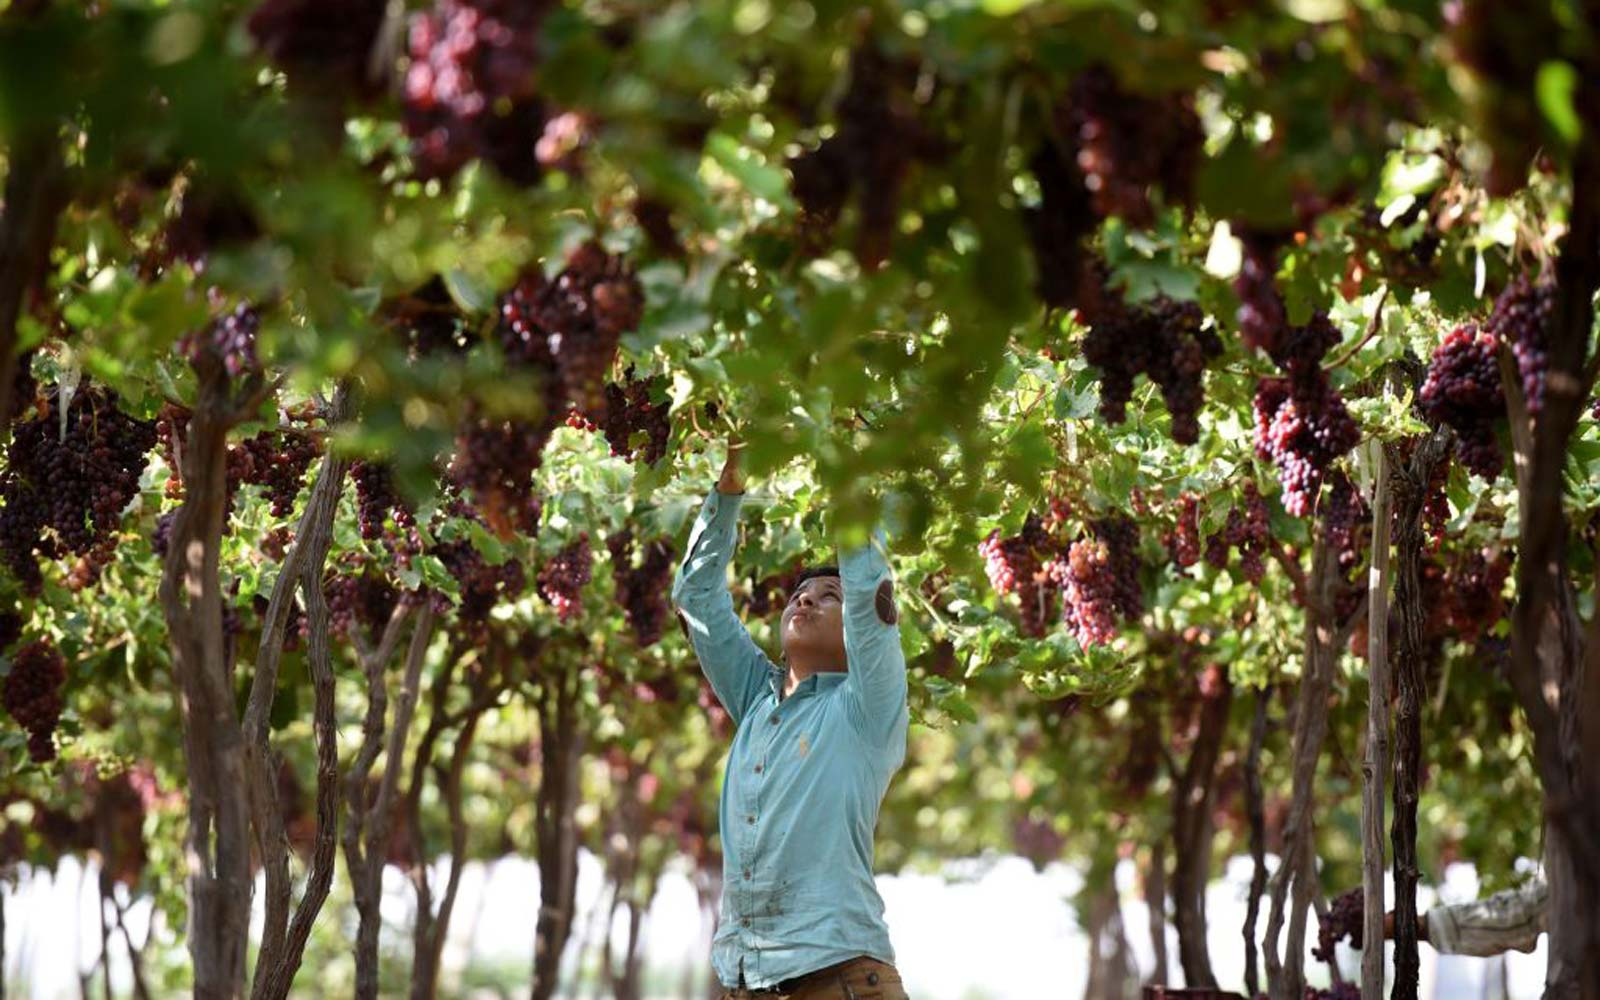 An Egyptian youth harvests grapes near the village of Kafr Dawud in the Egyptian Nile Delta province of al-Minufiyah, north of the capital Cairo